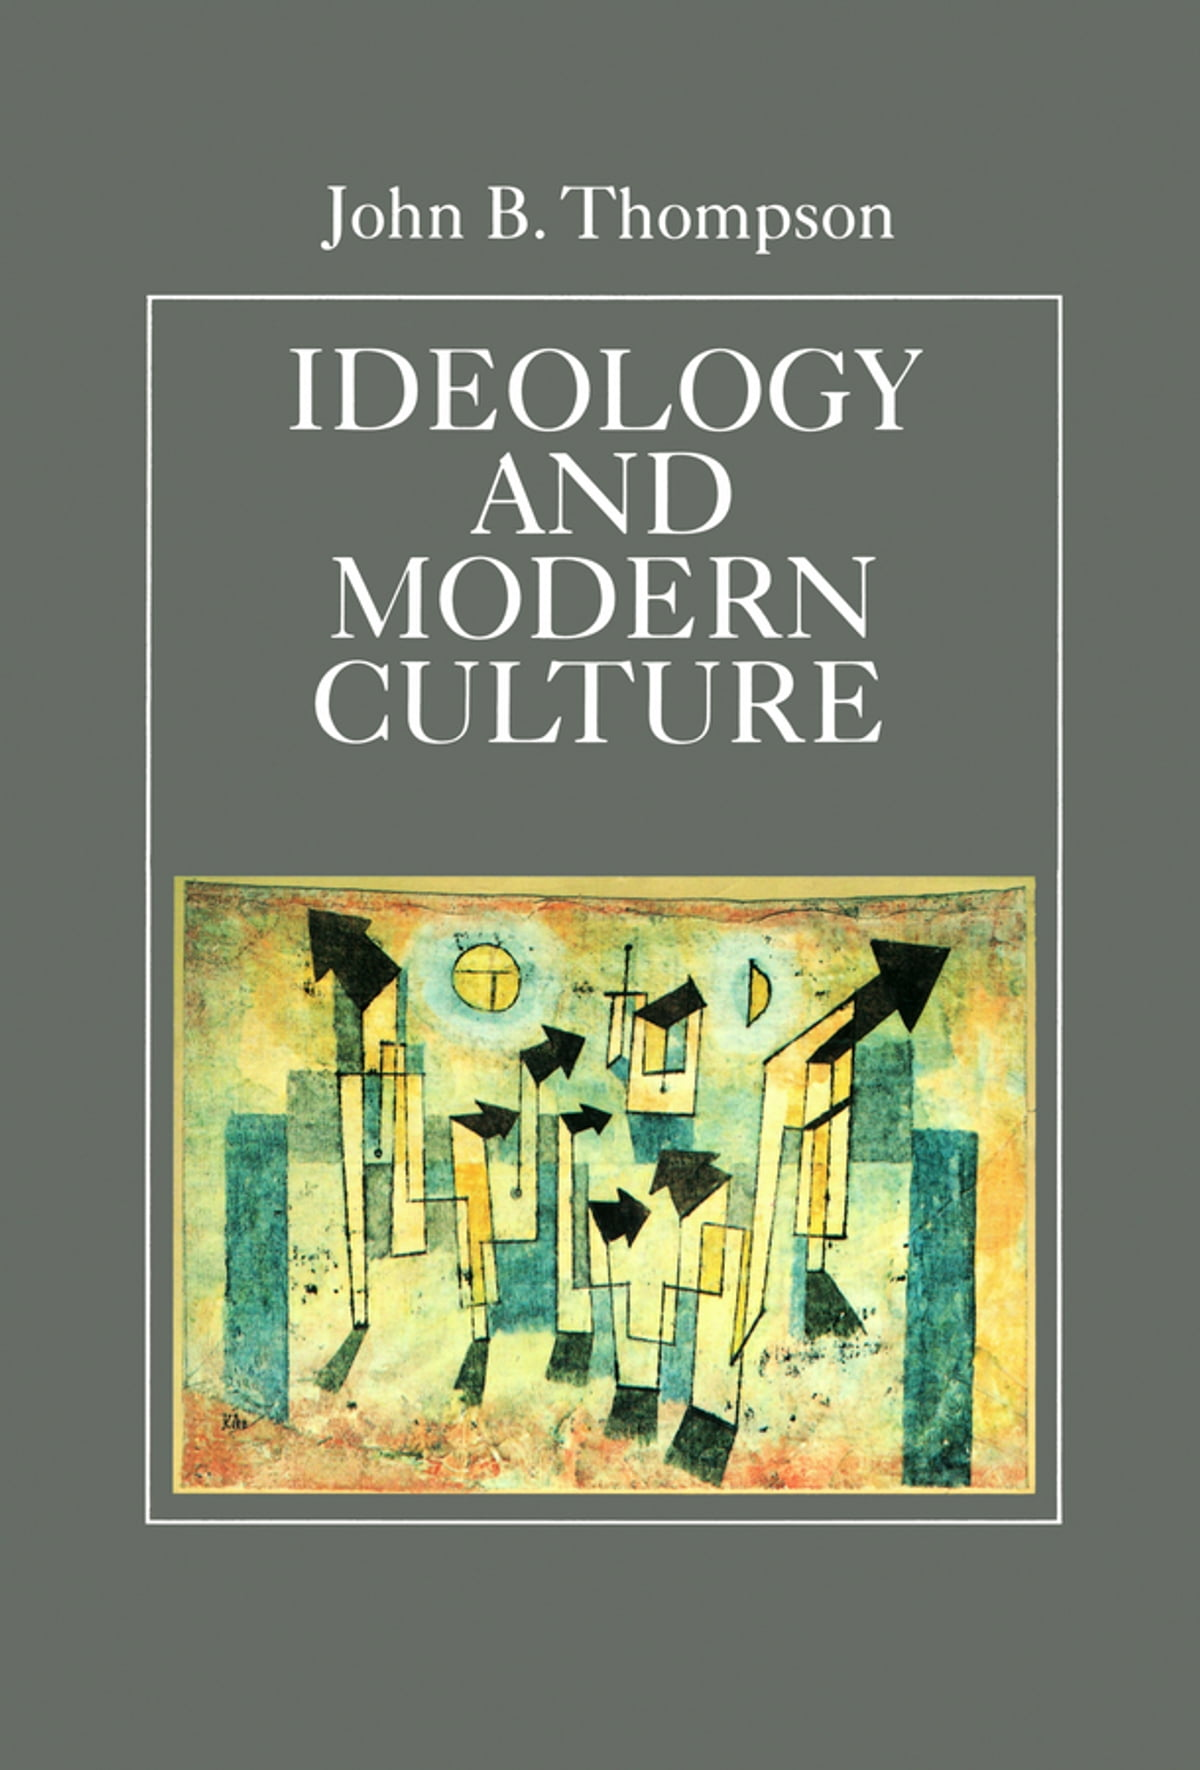 Ideology And Modern Culture Ebook By John B Thompson  9780745668765   Rakuten Kobo